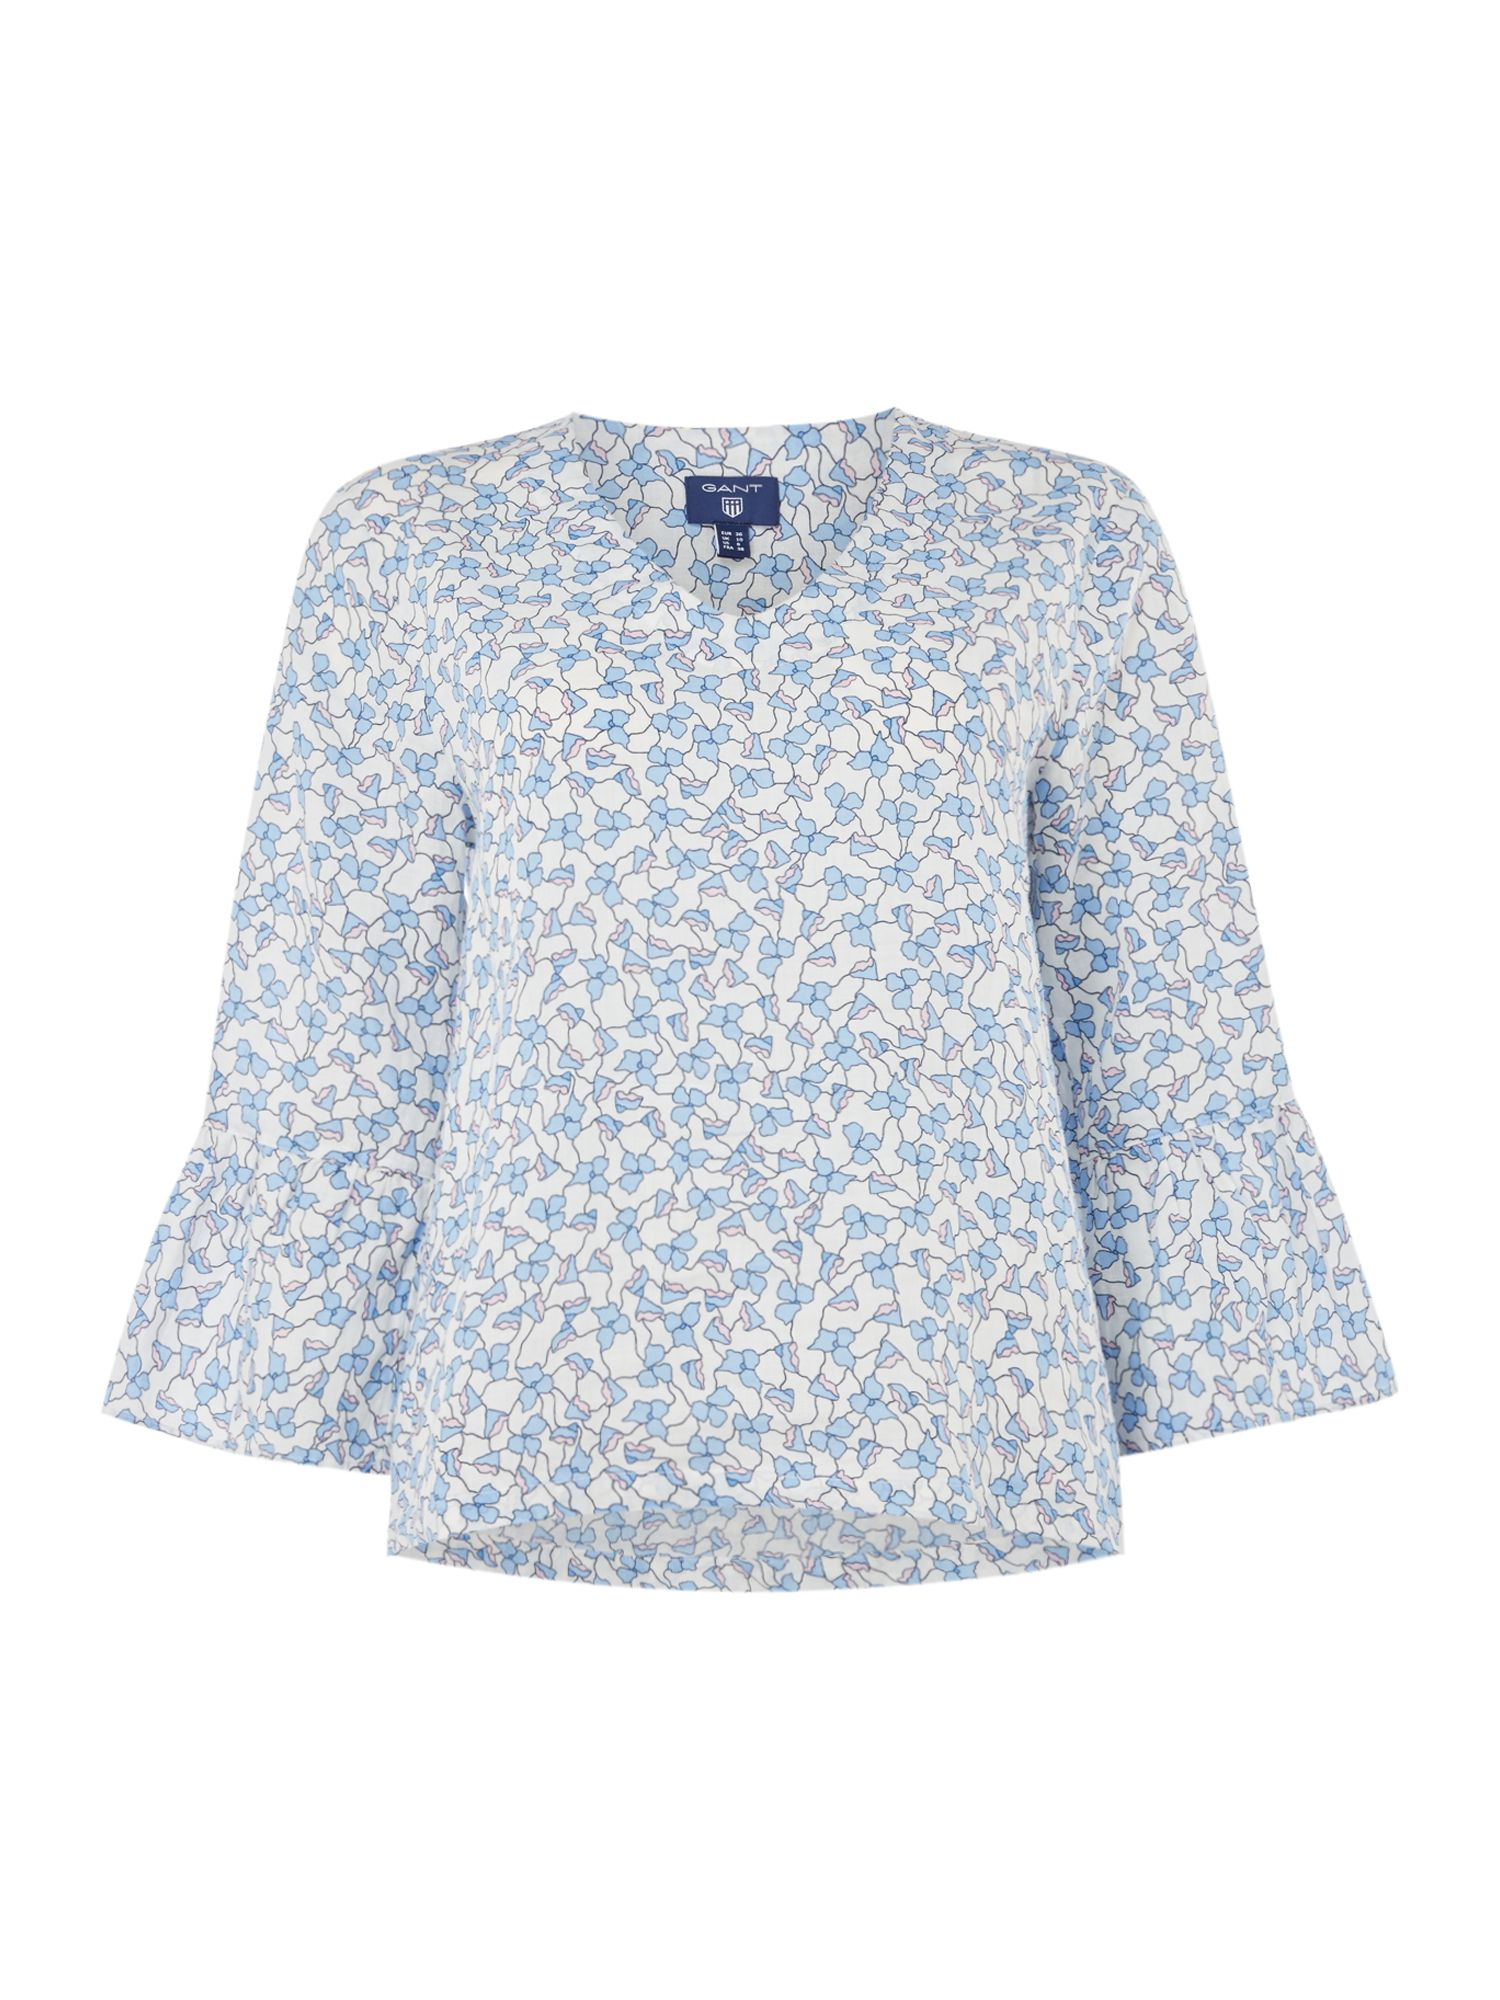 GANT Linked Floral Print Bell Sleeve Top, White